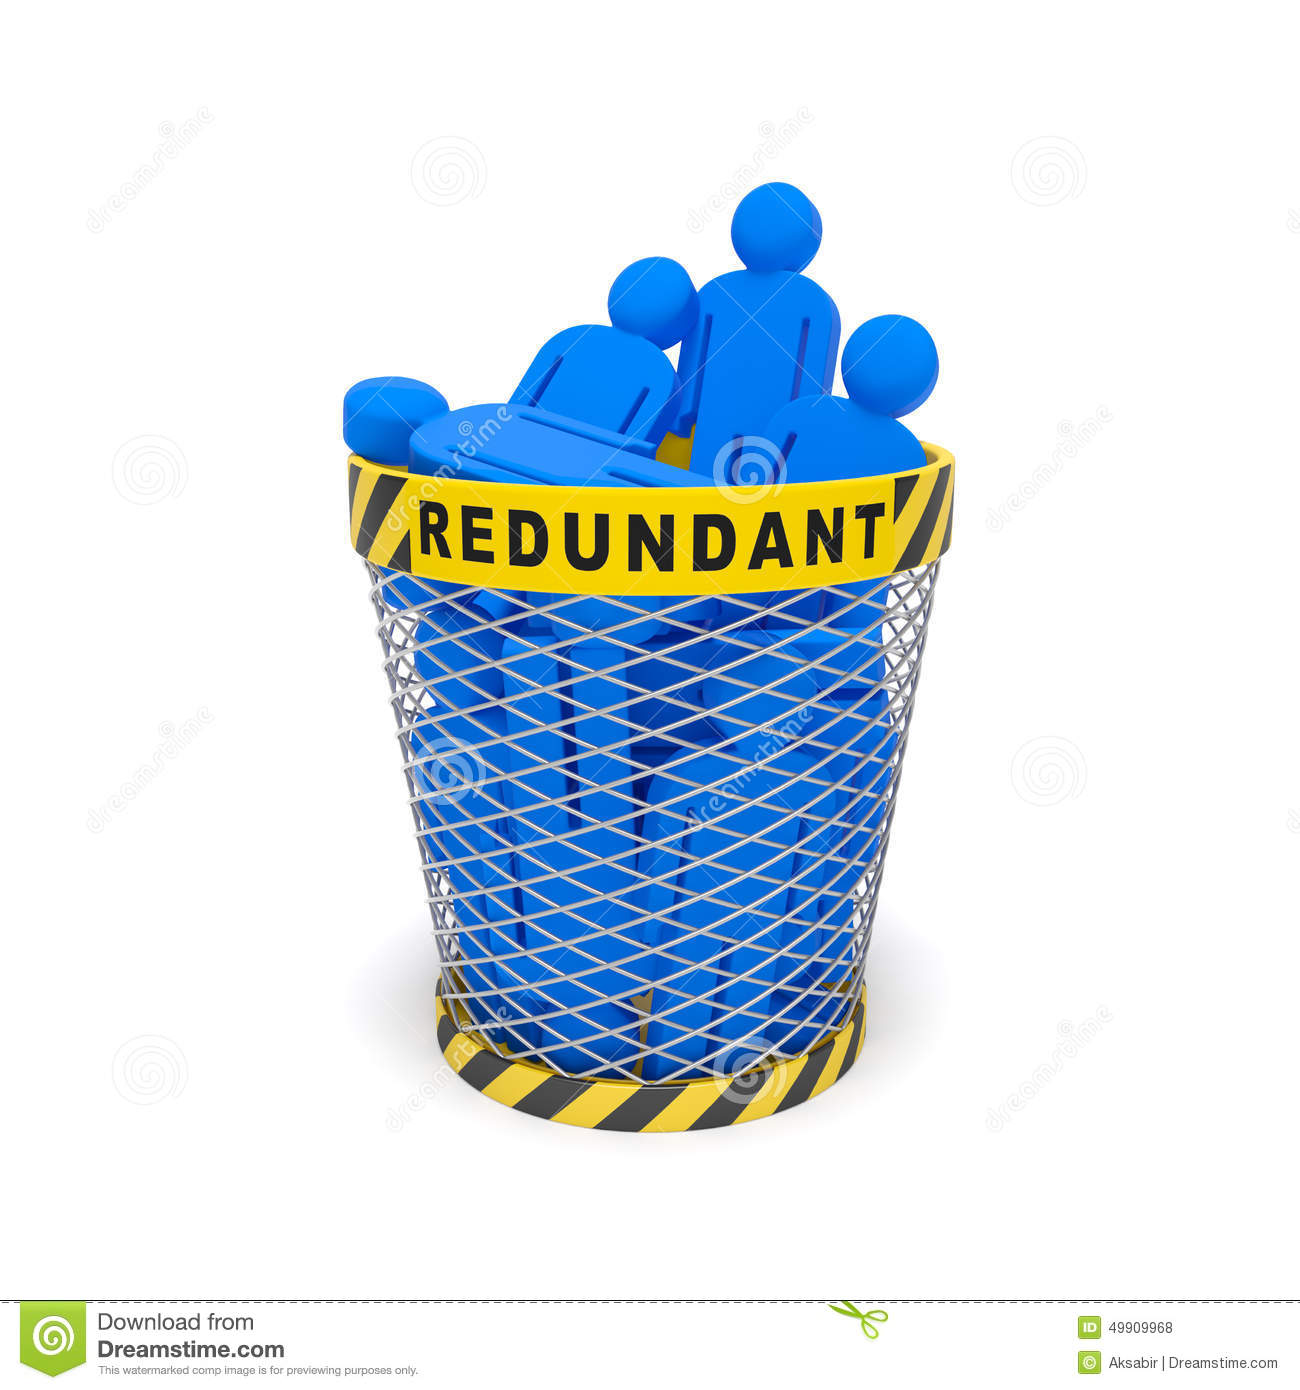 Redundant Wastebasket Stock Illustration - Image: 49909968